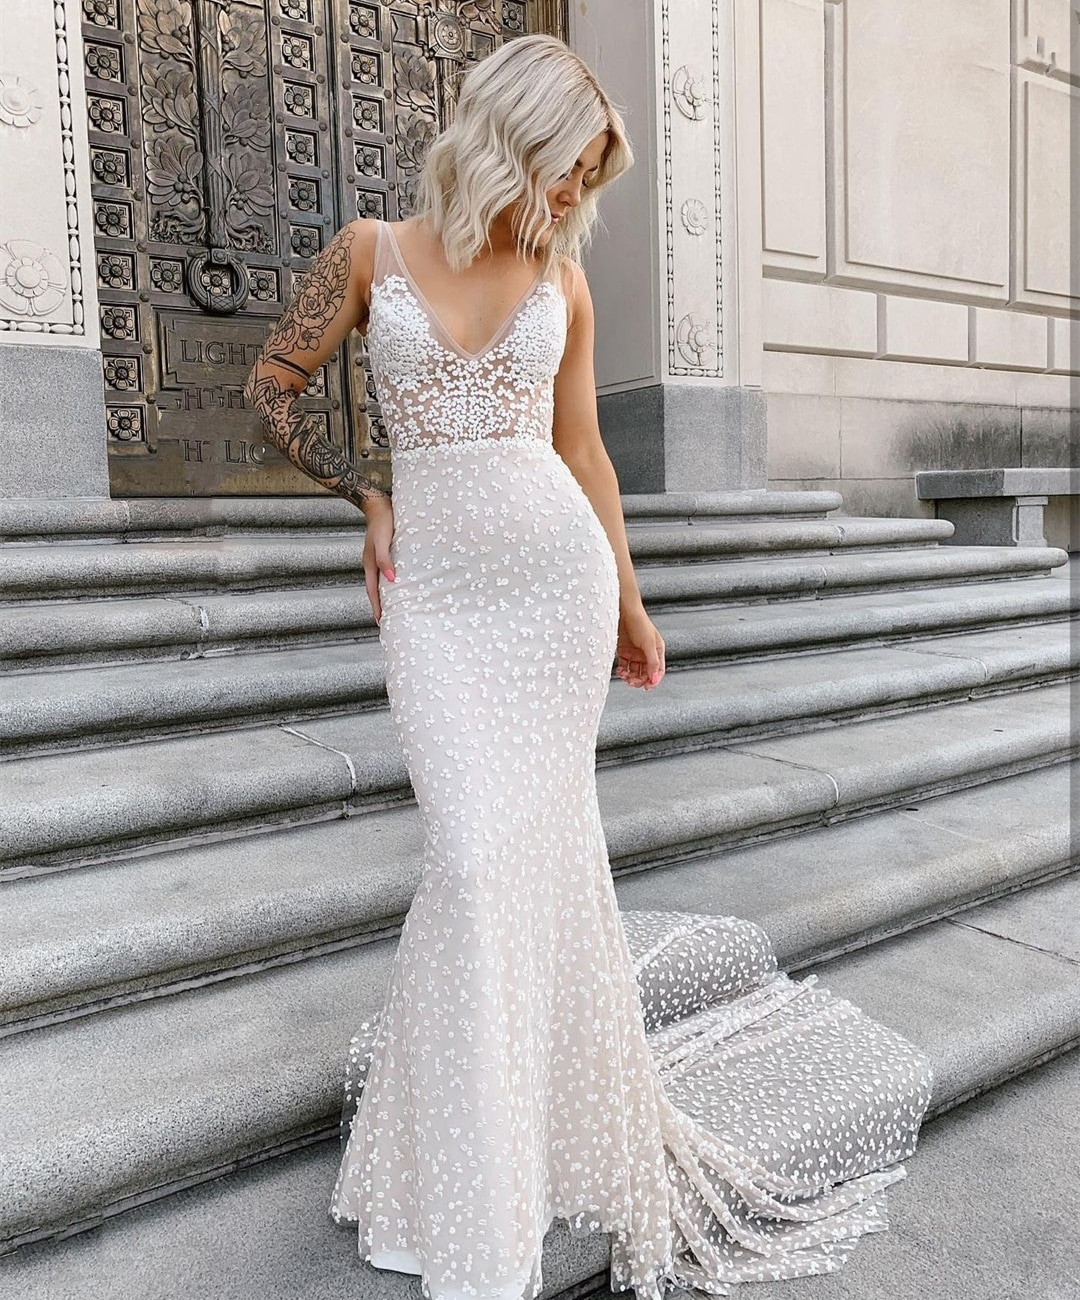 Review 2021 Mermaid V-Neck Sleeveless Wedding Dress Court Train Point Net Bridal Gown Charming Princess For Women Bridal Gown New